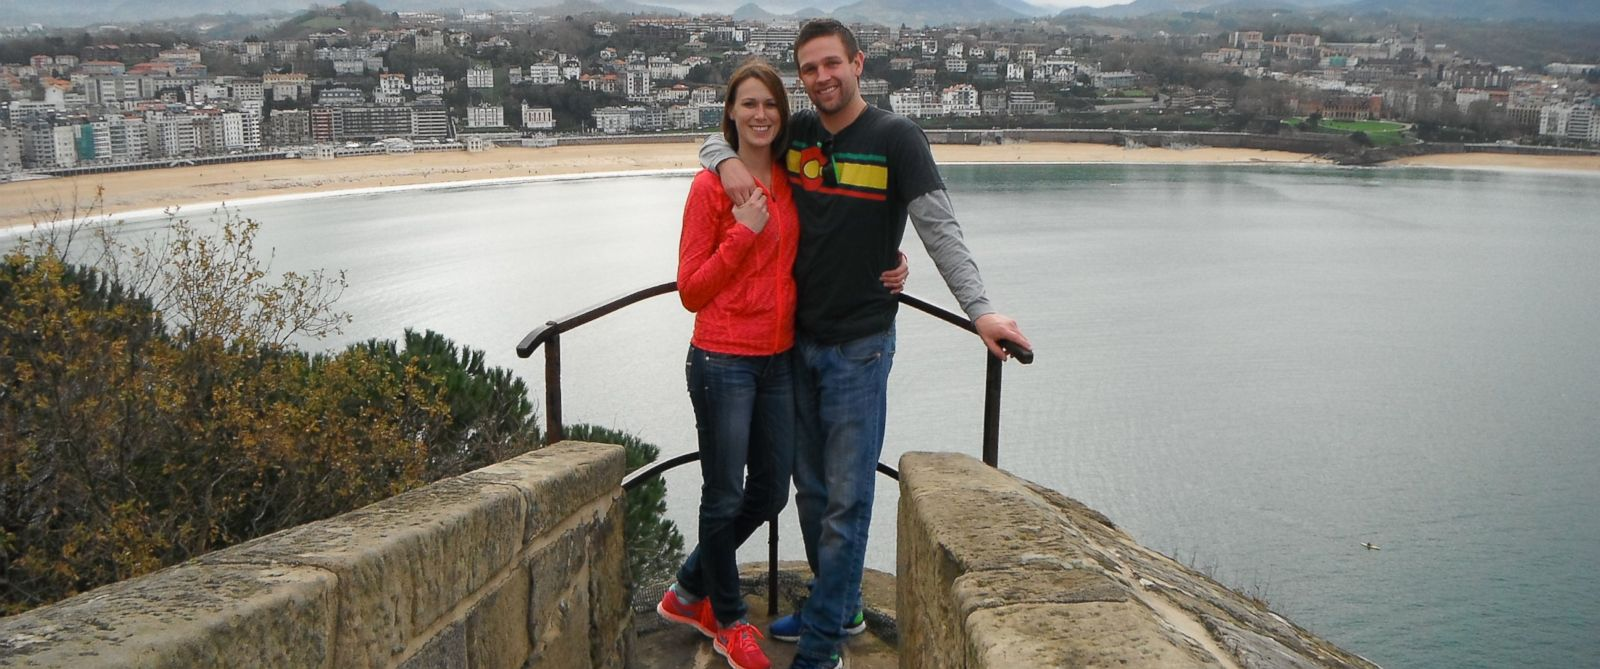 PHOTO: Amy Linville traveled to several places to receive clues from her boyfriend, Brett Arnold.